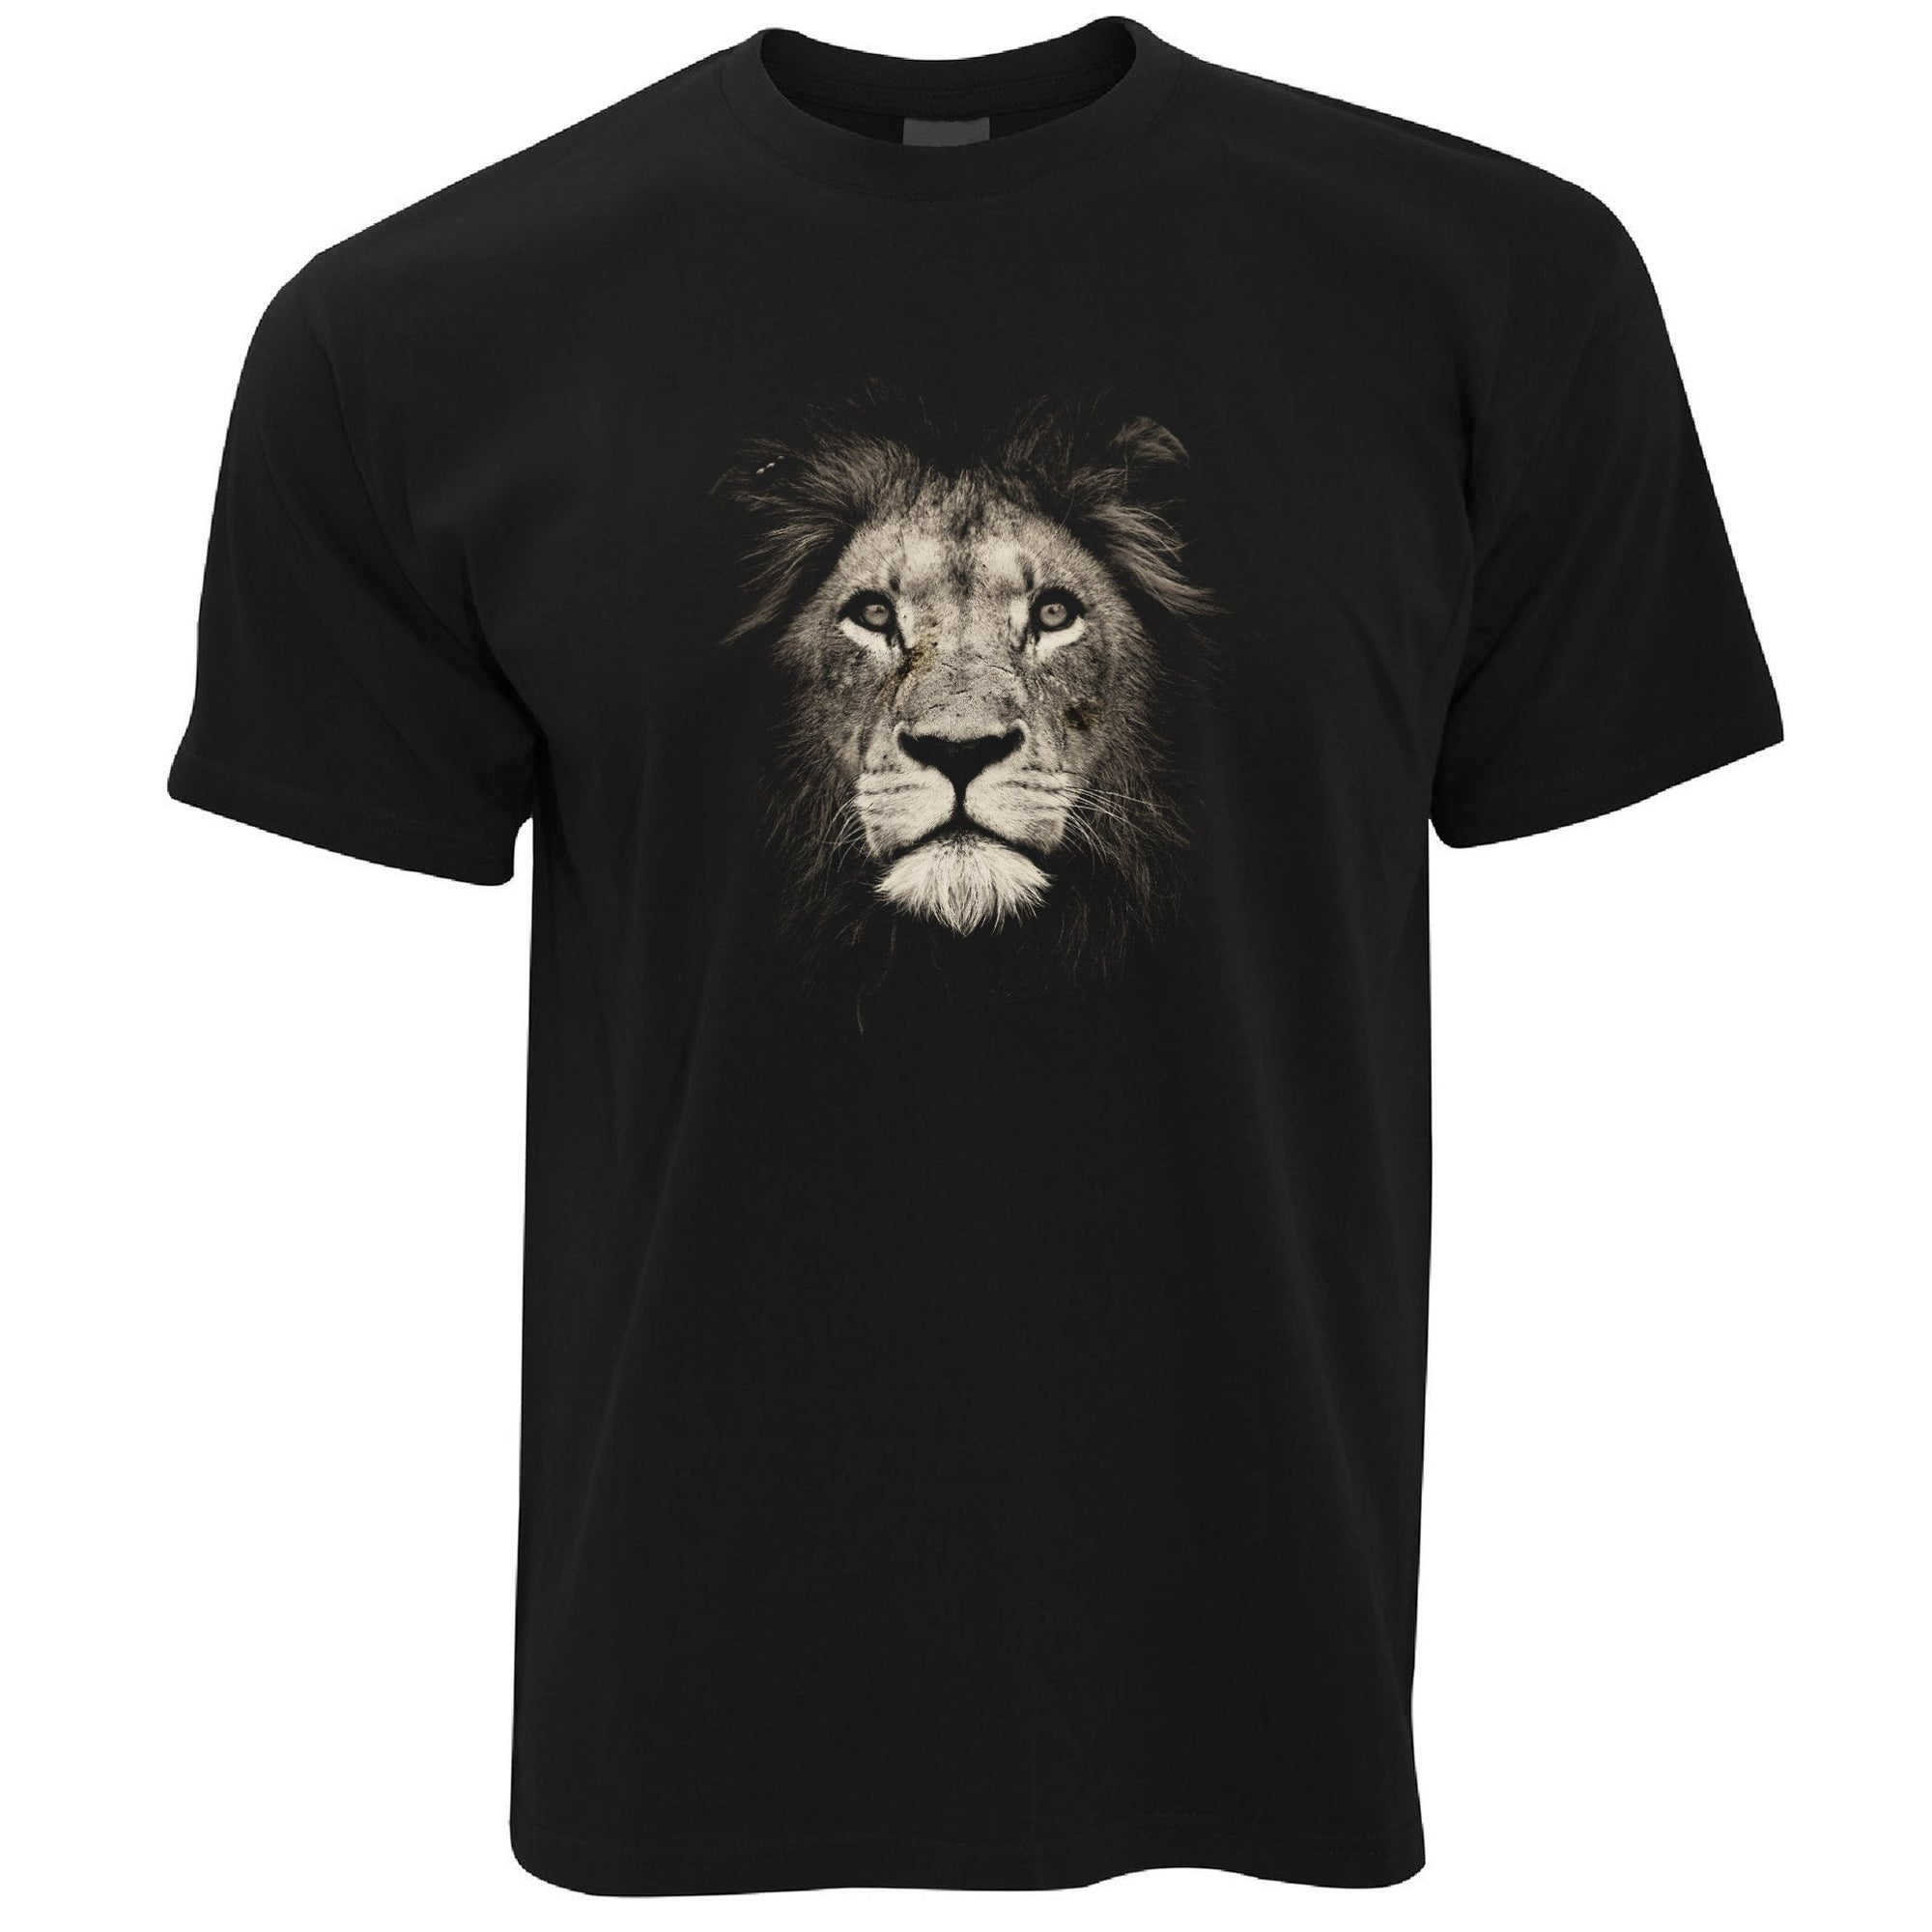 Stylish Animal T Shirt Photographic Lion Face Design